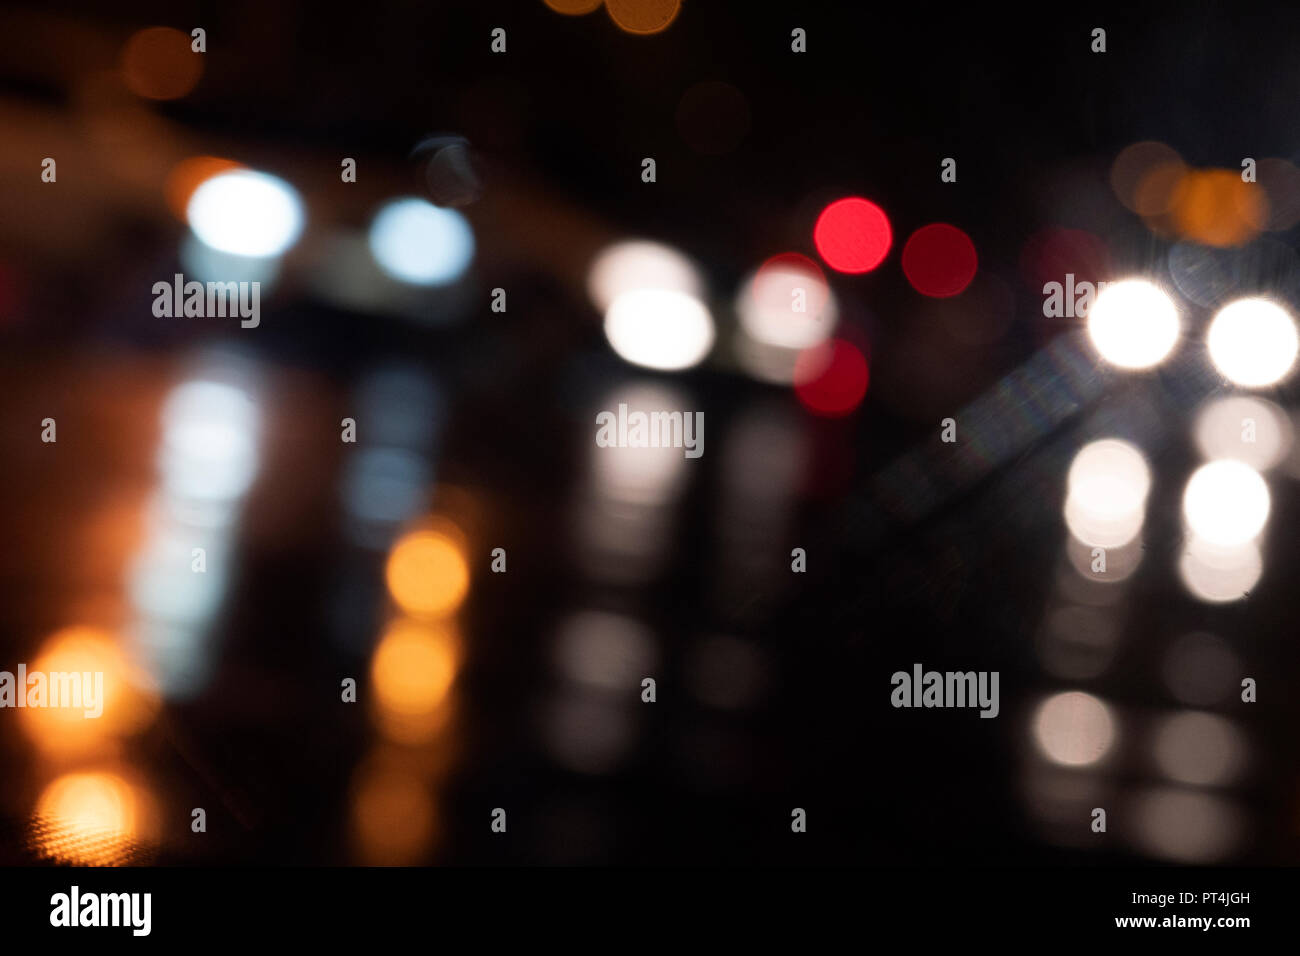 Blurred light from car headlights reflected from a wet road on a rainy night. - Stock Image